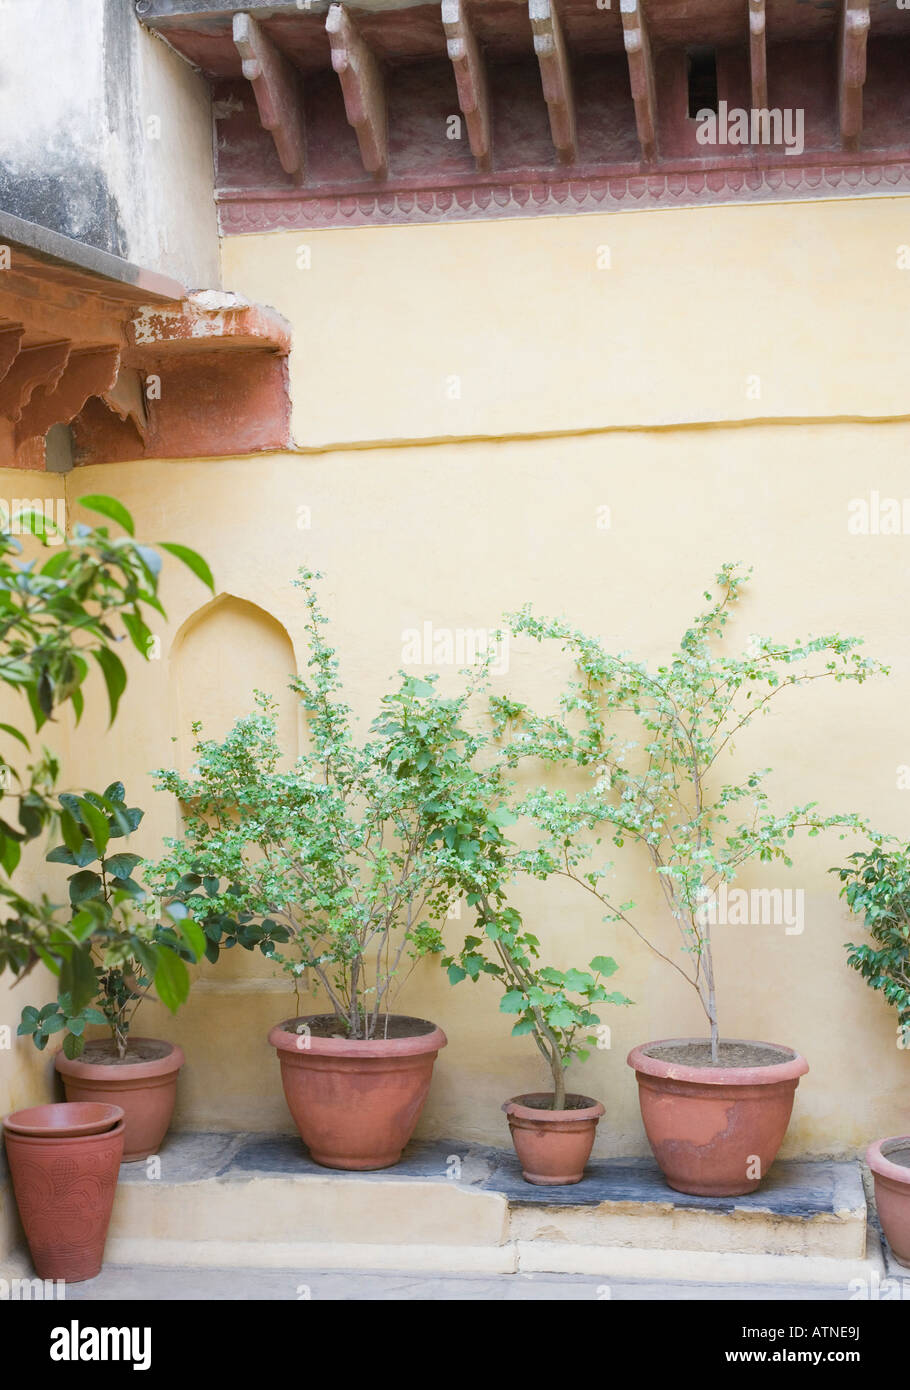 Potted plants in front of a wall - Stock Image